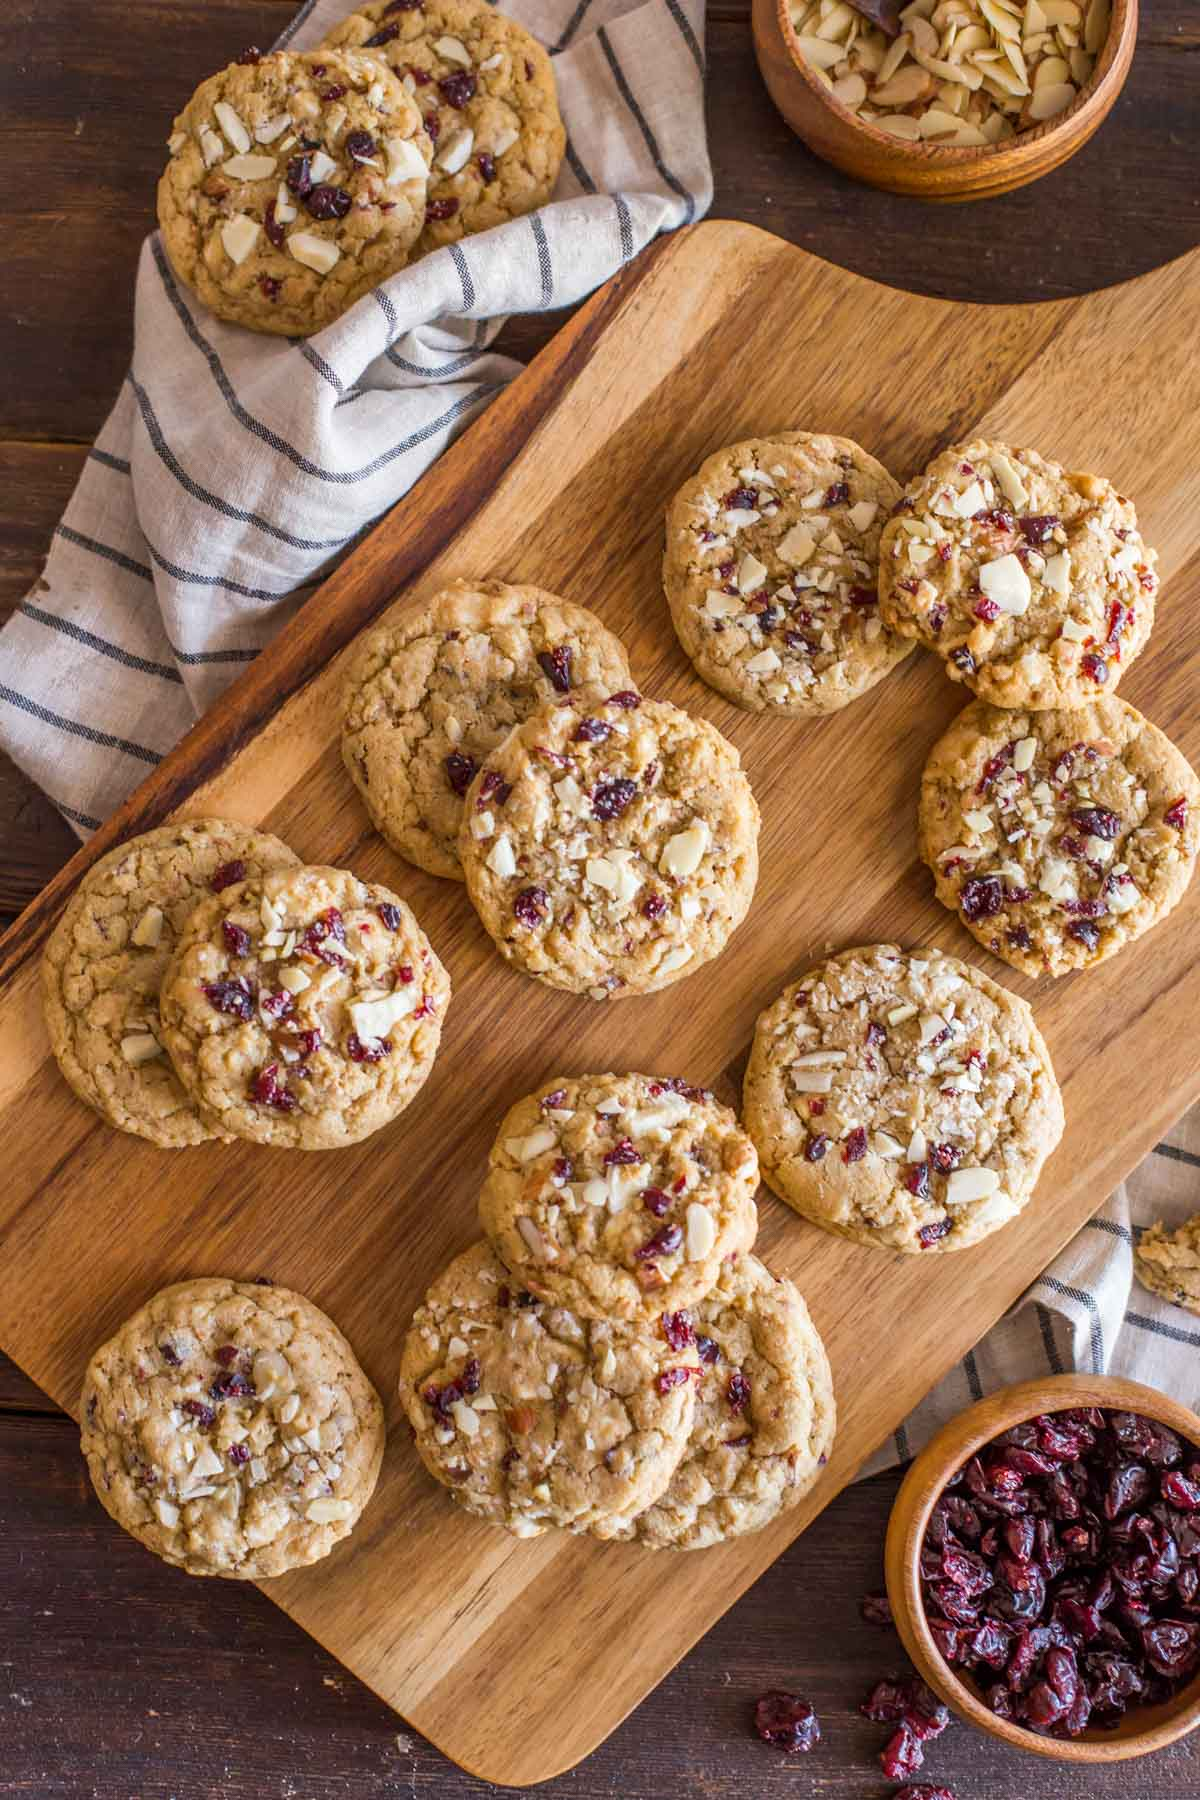 Cranberry Almond White Chocolate Chunk Cookies on a wood cutting board, with a wood bowl of sliced almonds and a wood bowl of dried cranberries next to the board.